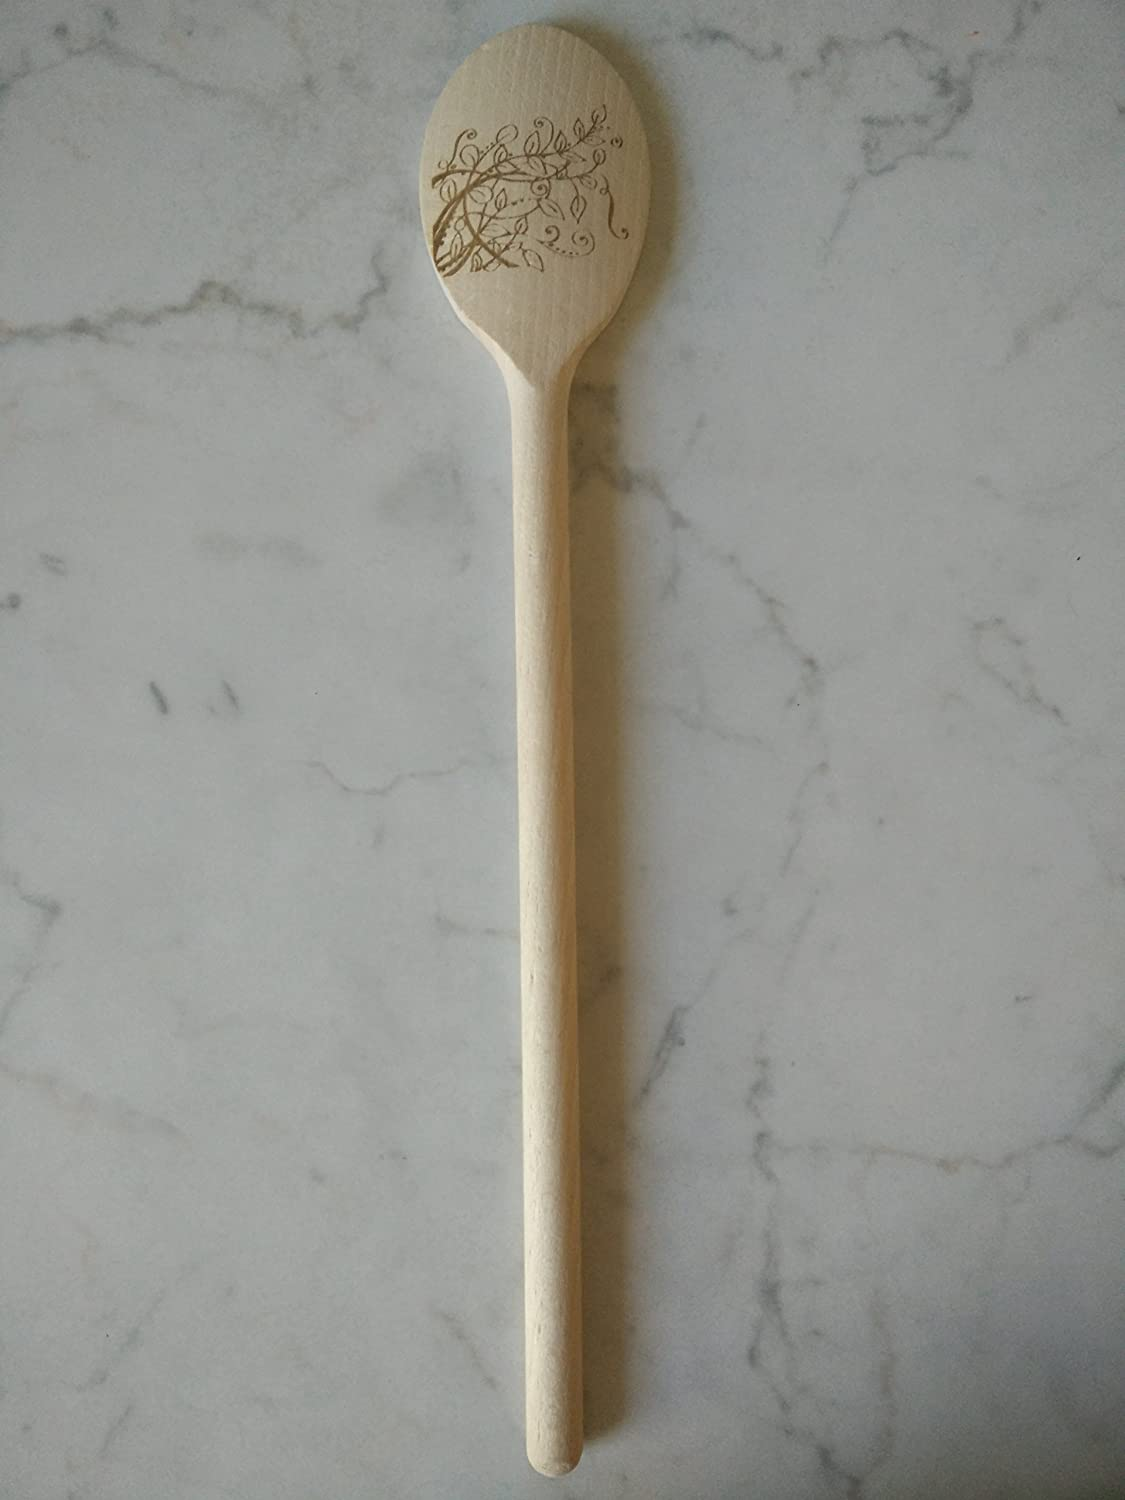 12 Inch Wooden Kitchen Spoons Baking Mixing Serving Craft Utensils